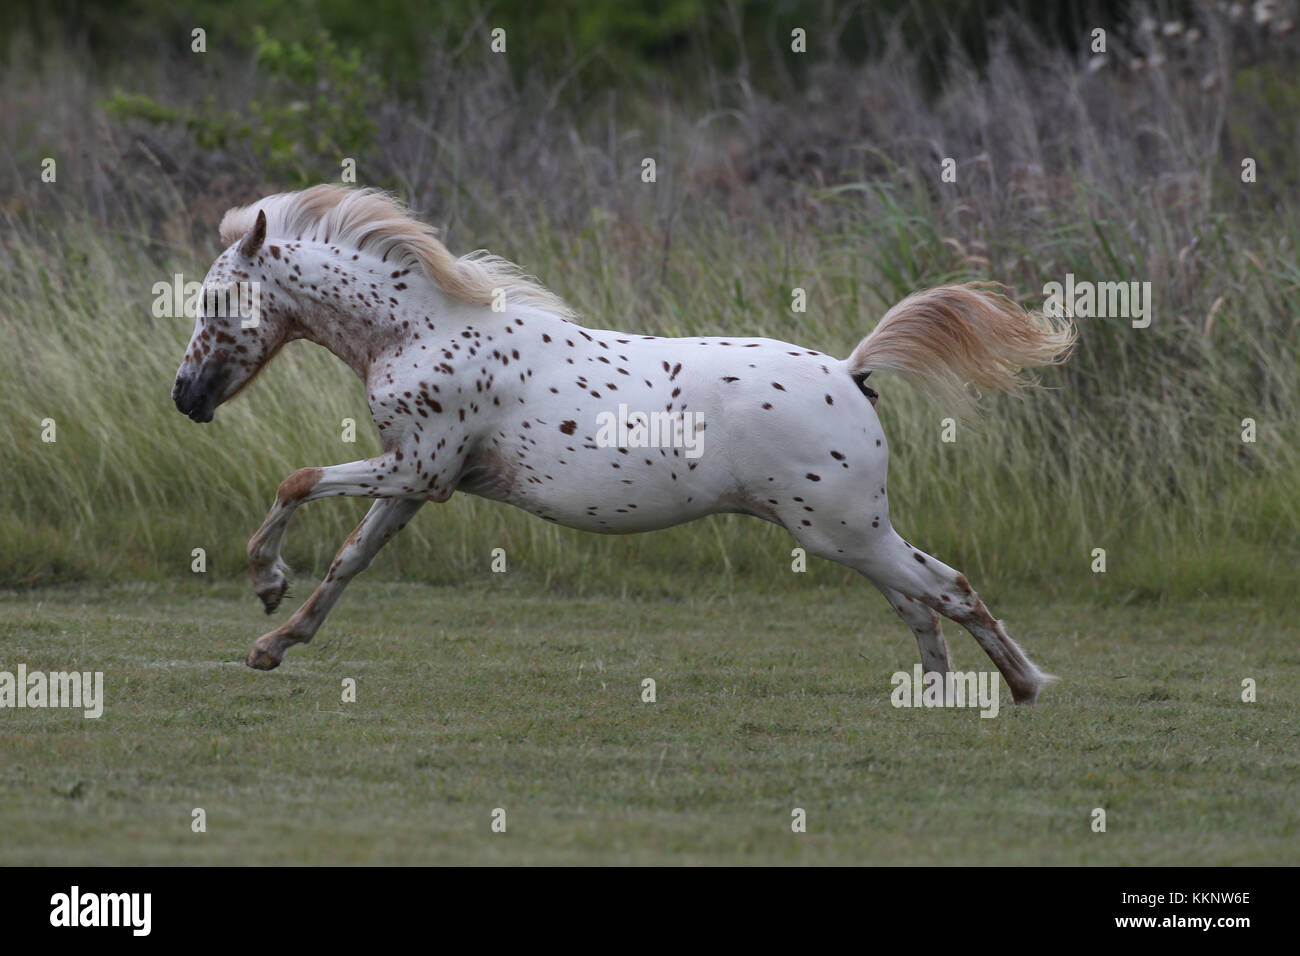 Pony Of America Filly leaping - Stock Image